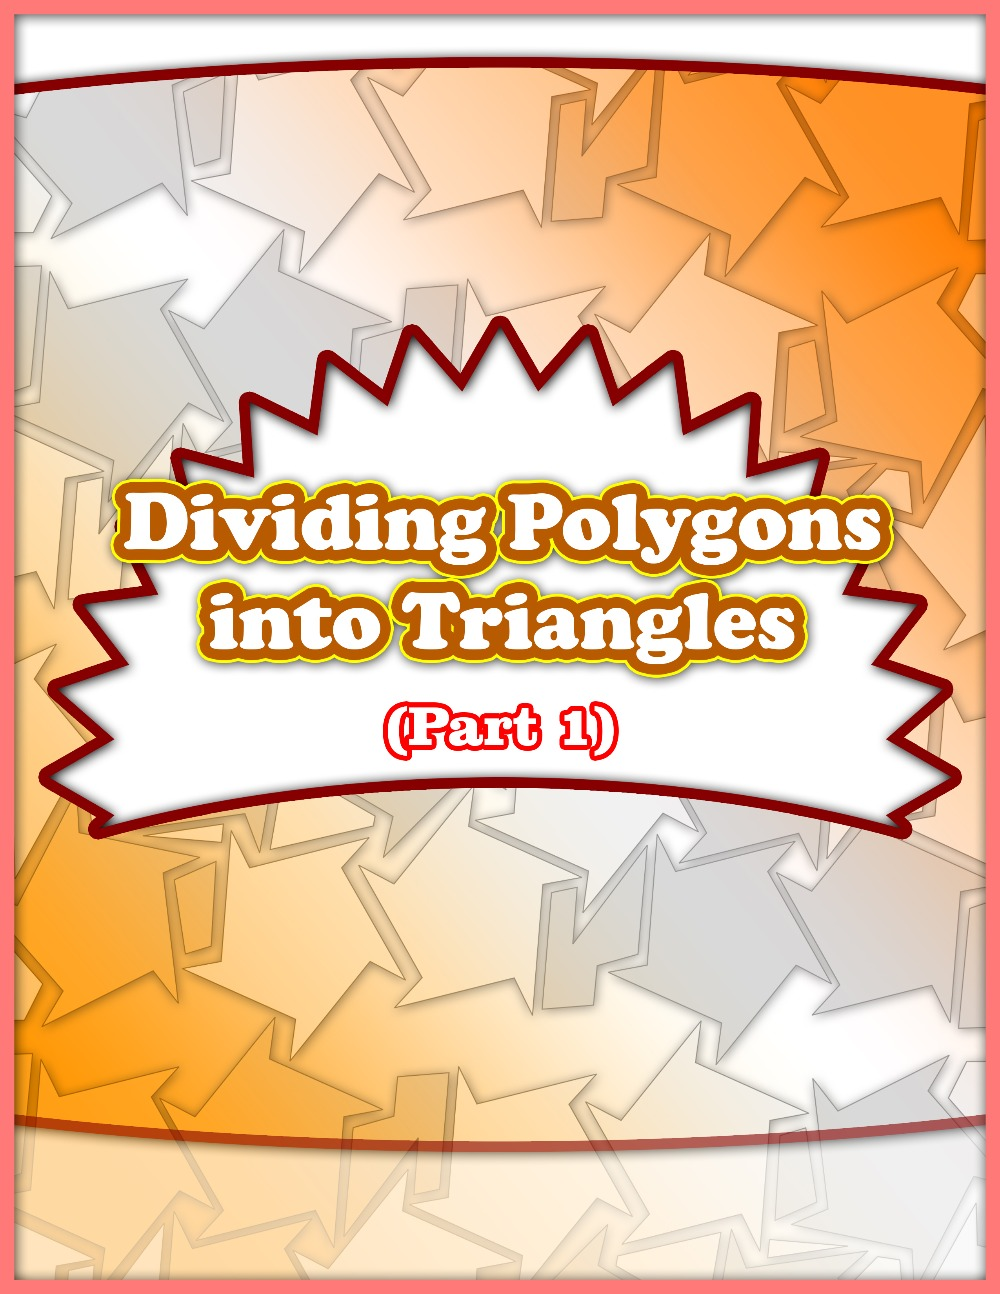 Dividing Polygons into Triangles (Part 1)